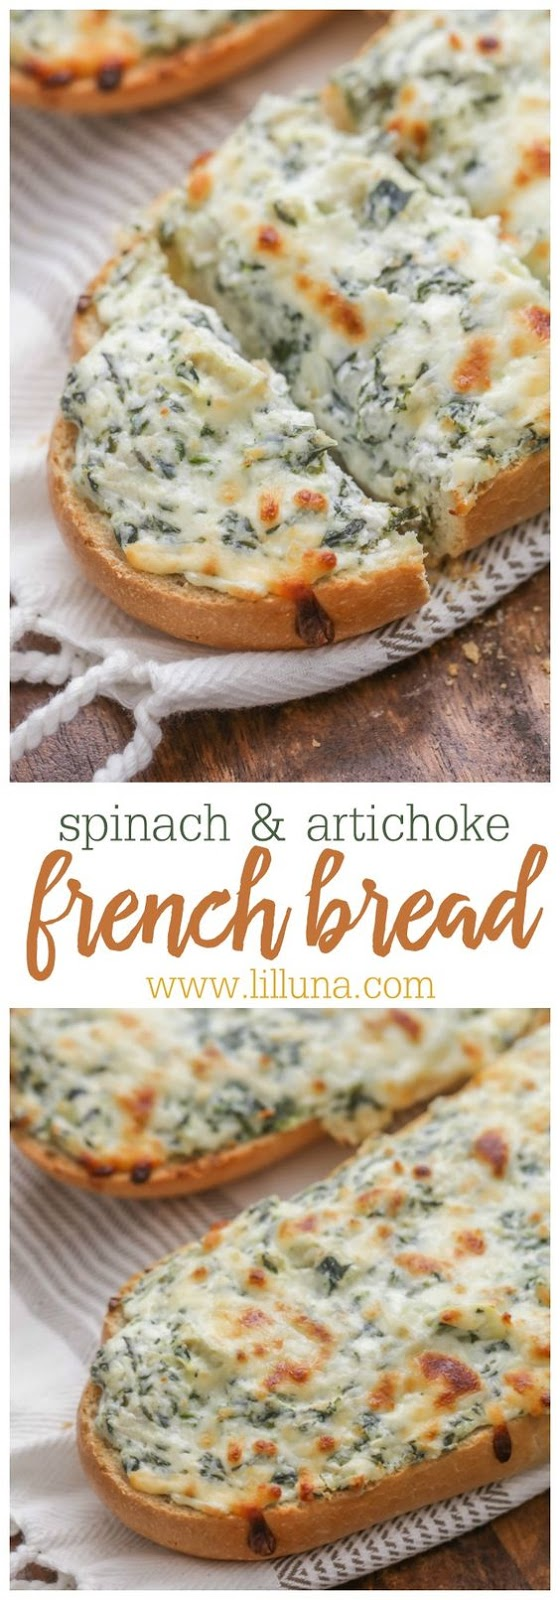 SPINACH AND ARTICHOKE FRENCH BREAD #APPETIZER #AMERICAN #BREAD